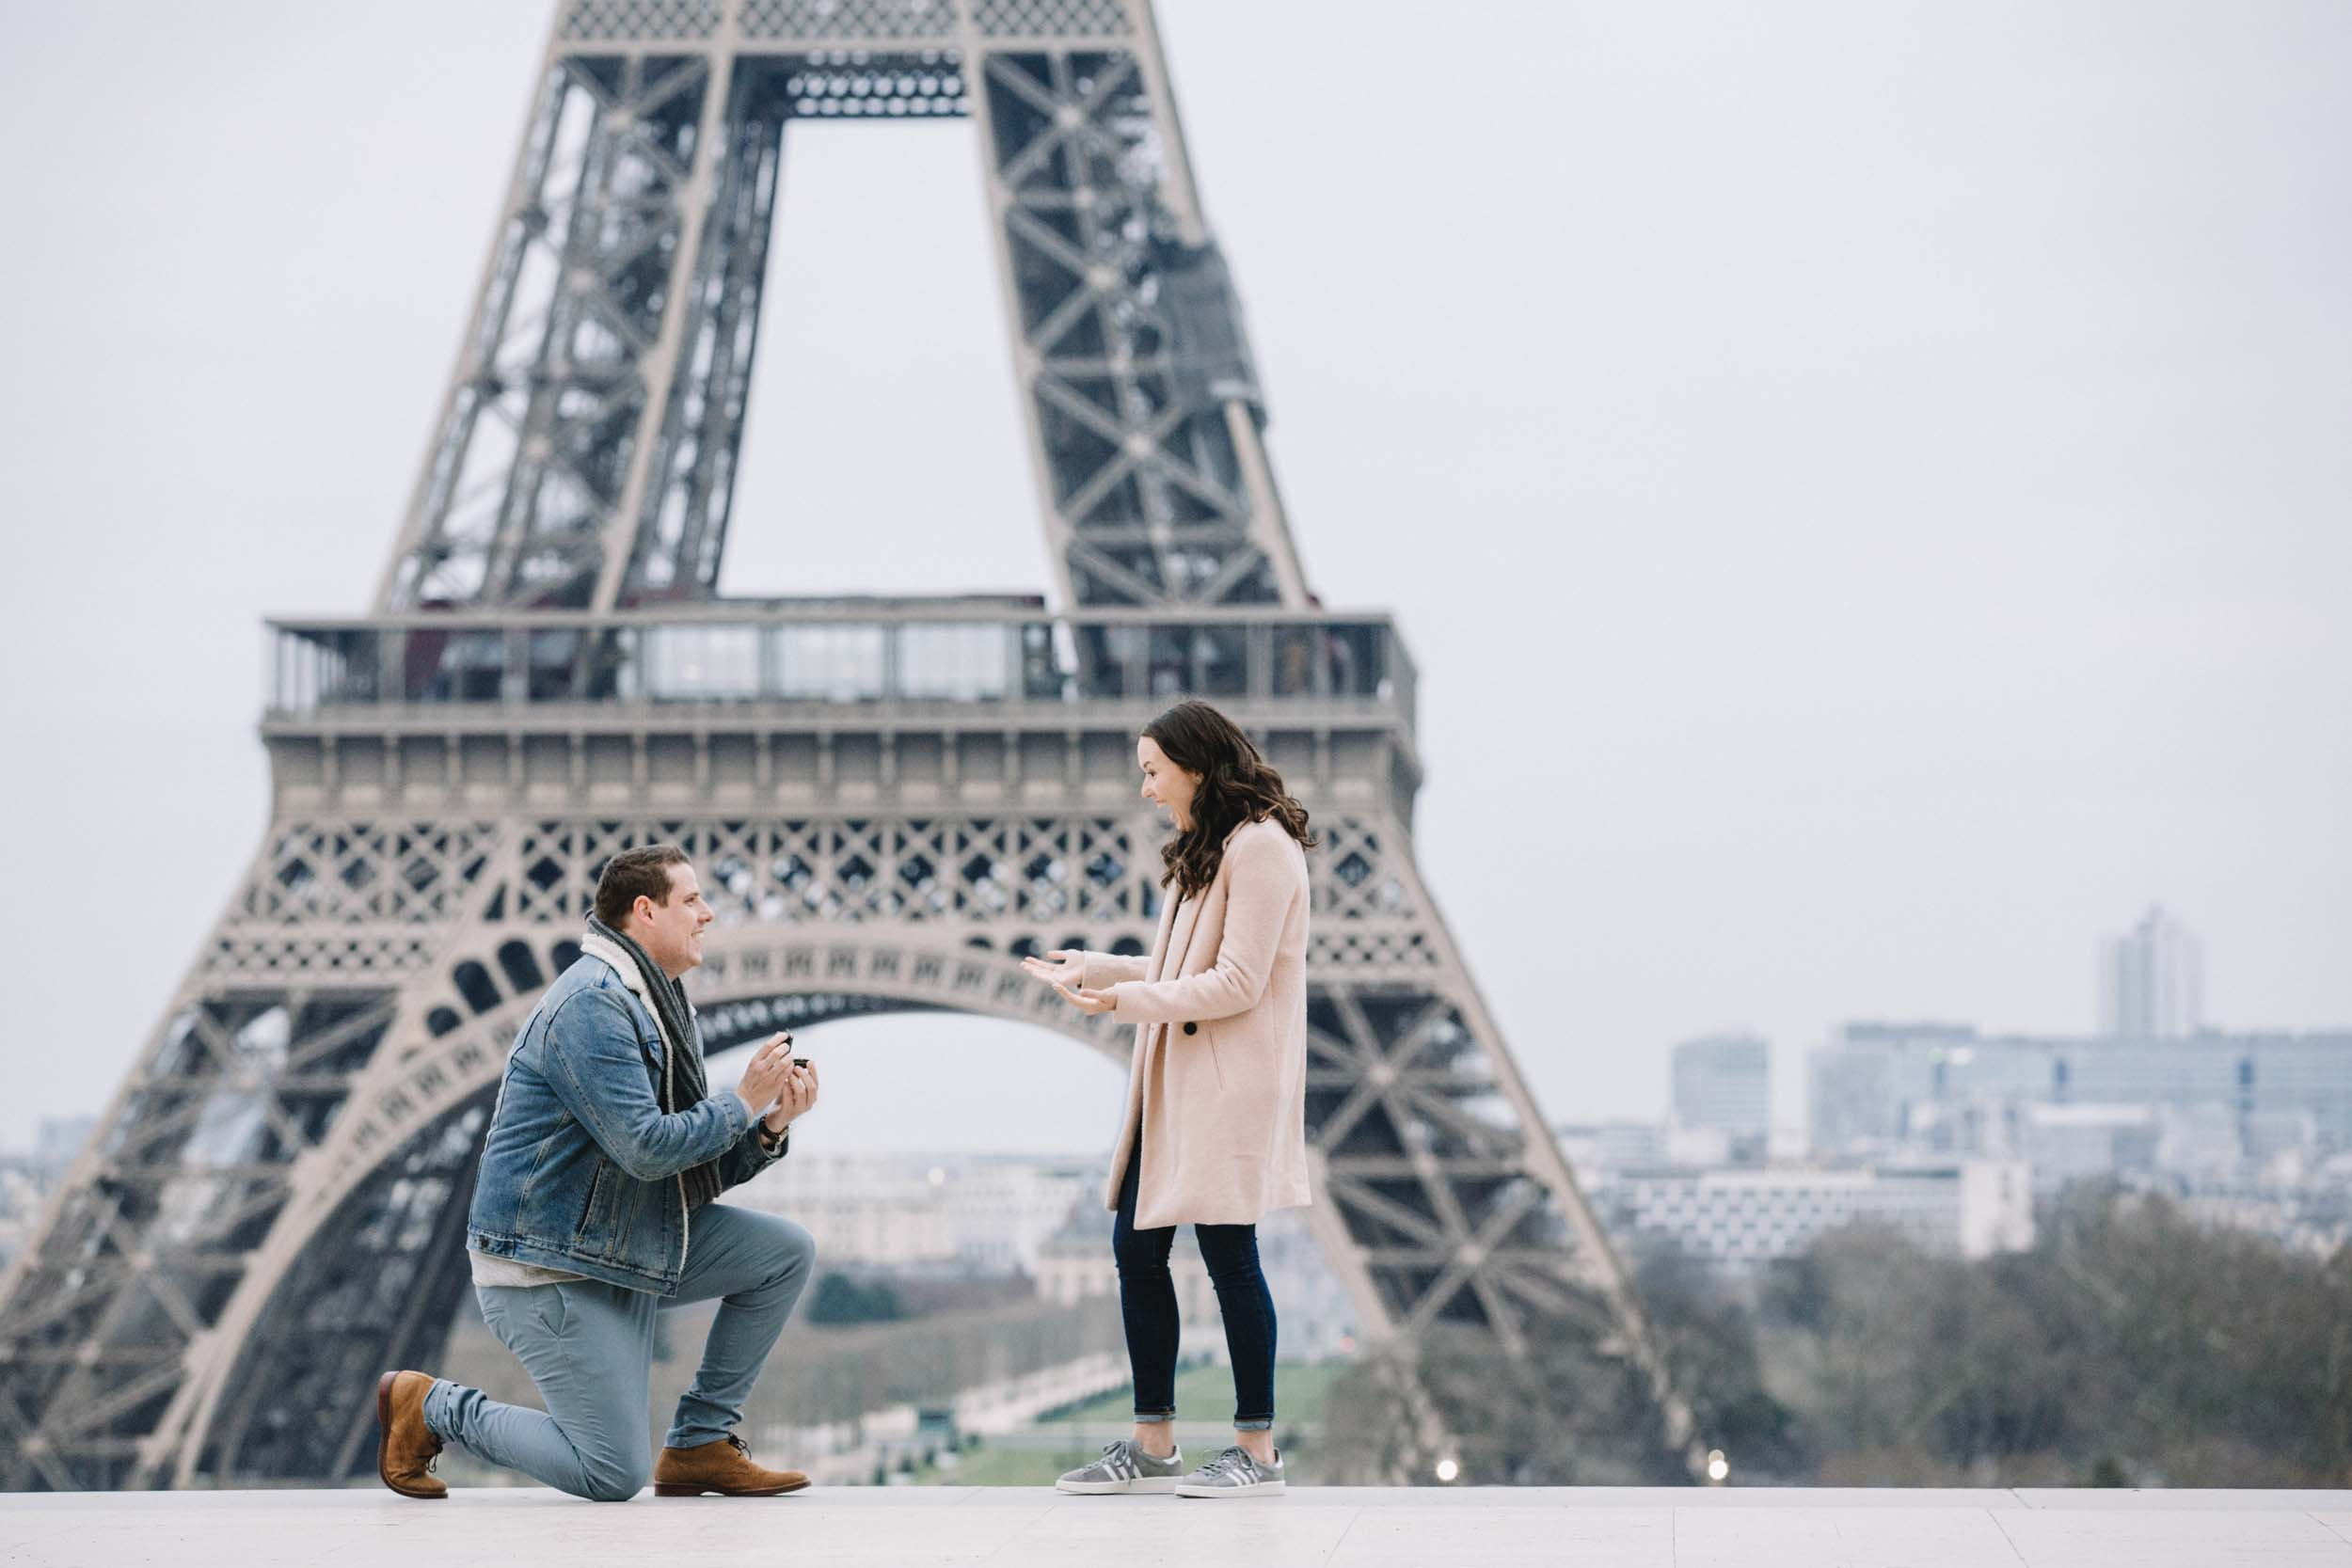 Image result for eiffel tower proposal